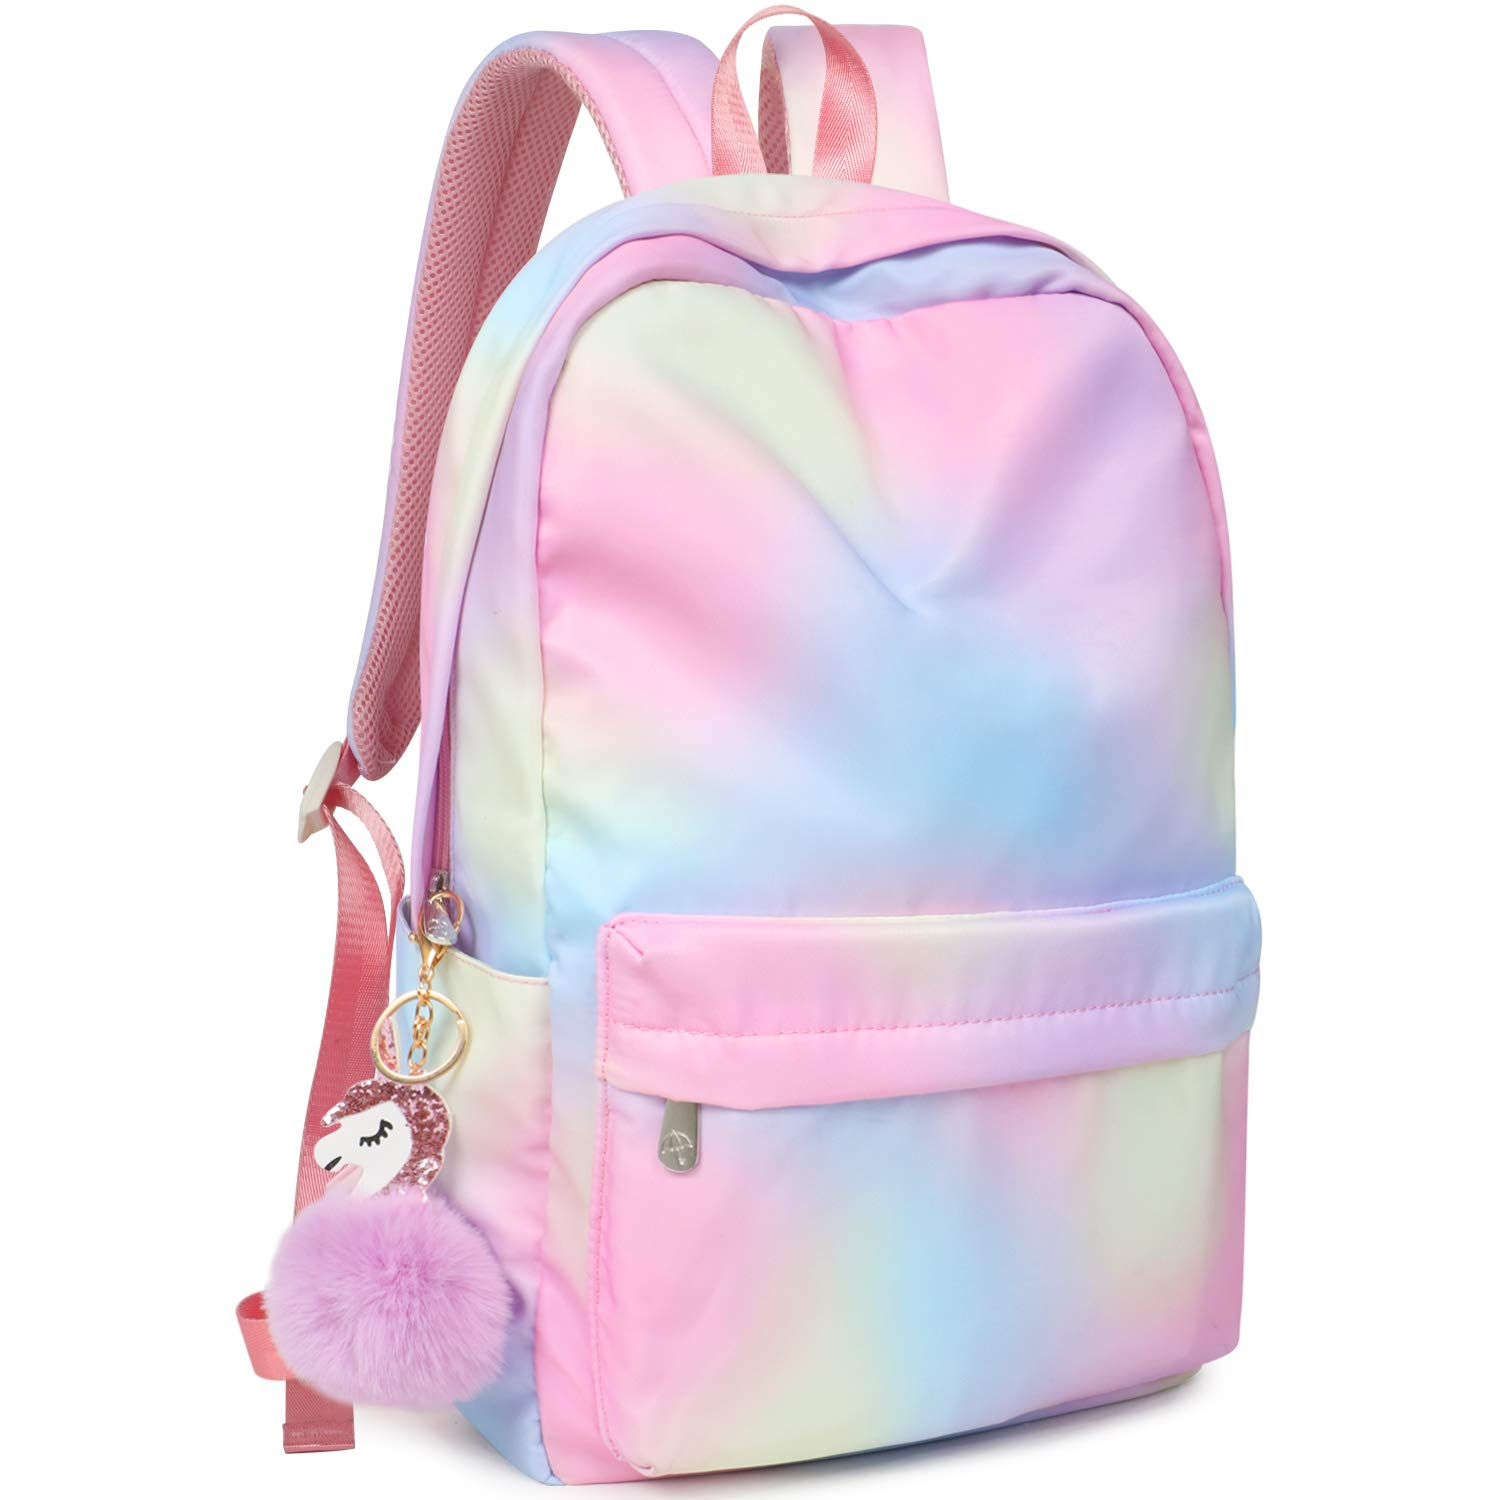 """Backpack for Girls Water Resistance School Book Bag 15.6"""" Laptop compartment College Daypack Bookbag"""